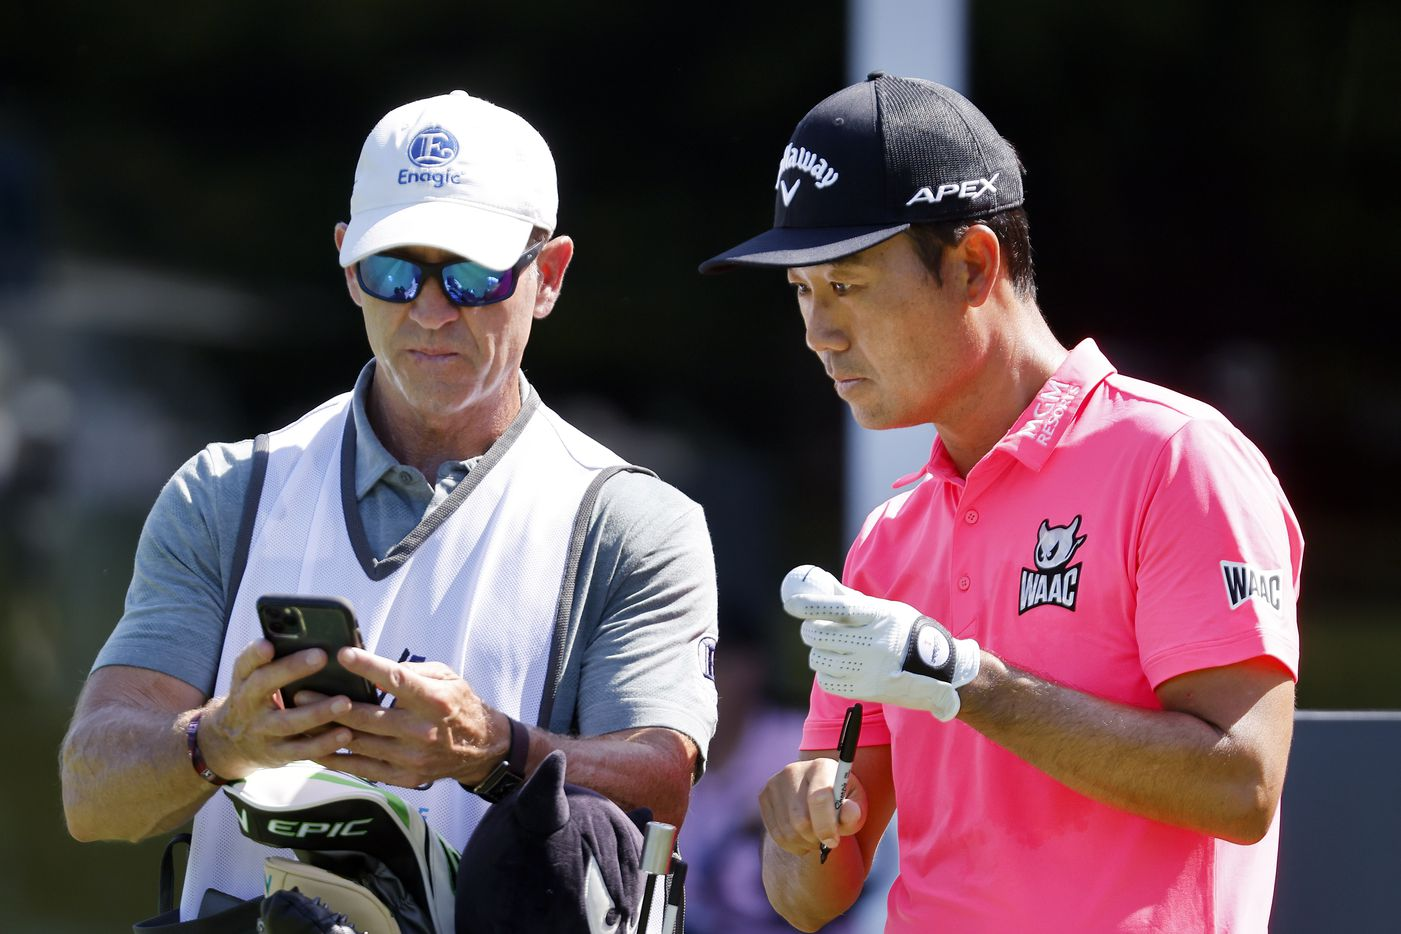 Golfer Kevin Na confers with his caddie before teeing off on No. 17 during the Charles Schwab Challenge Colonial Pro-Am at the Colonial Country Club in Fort Worth, Wednesday, May 26, 2021. Na won the tournament in 2019. (Tom Fox/The Dallas Morning News)